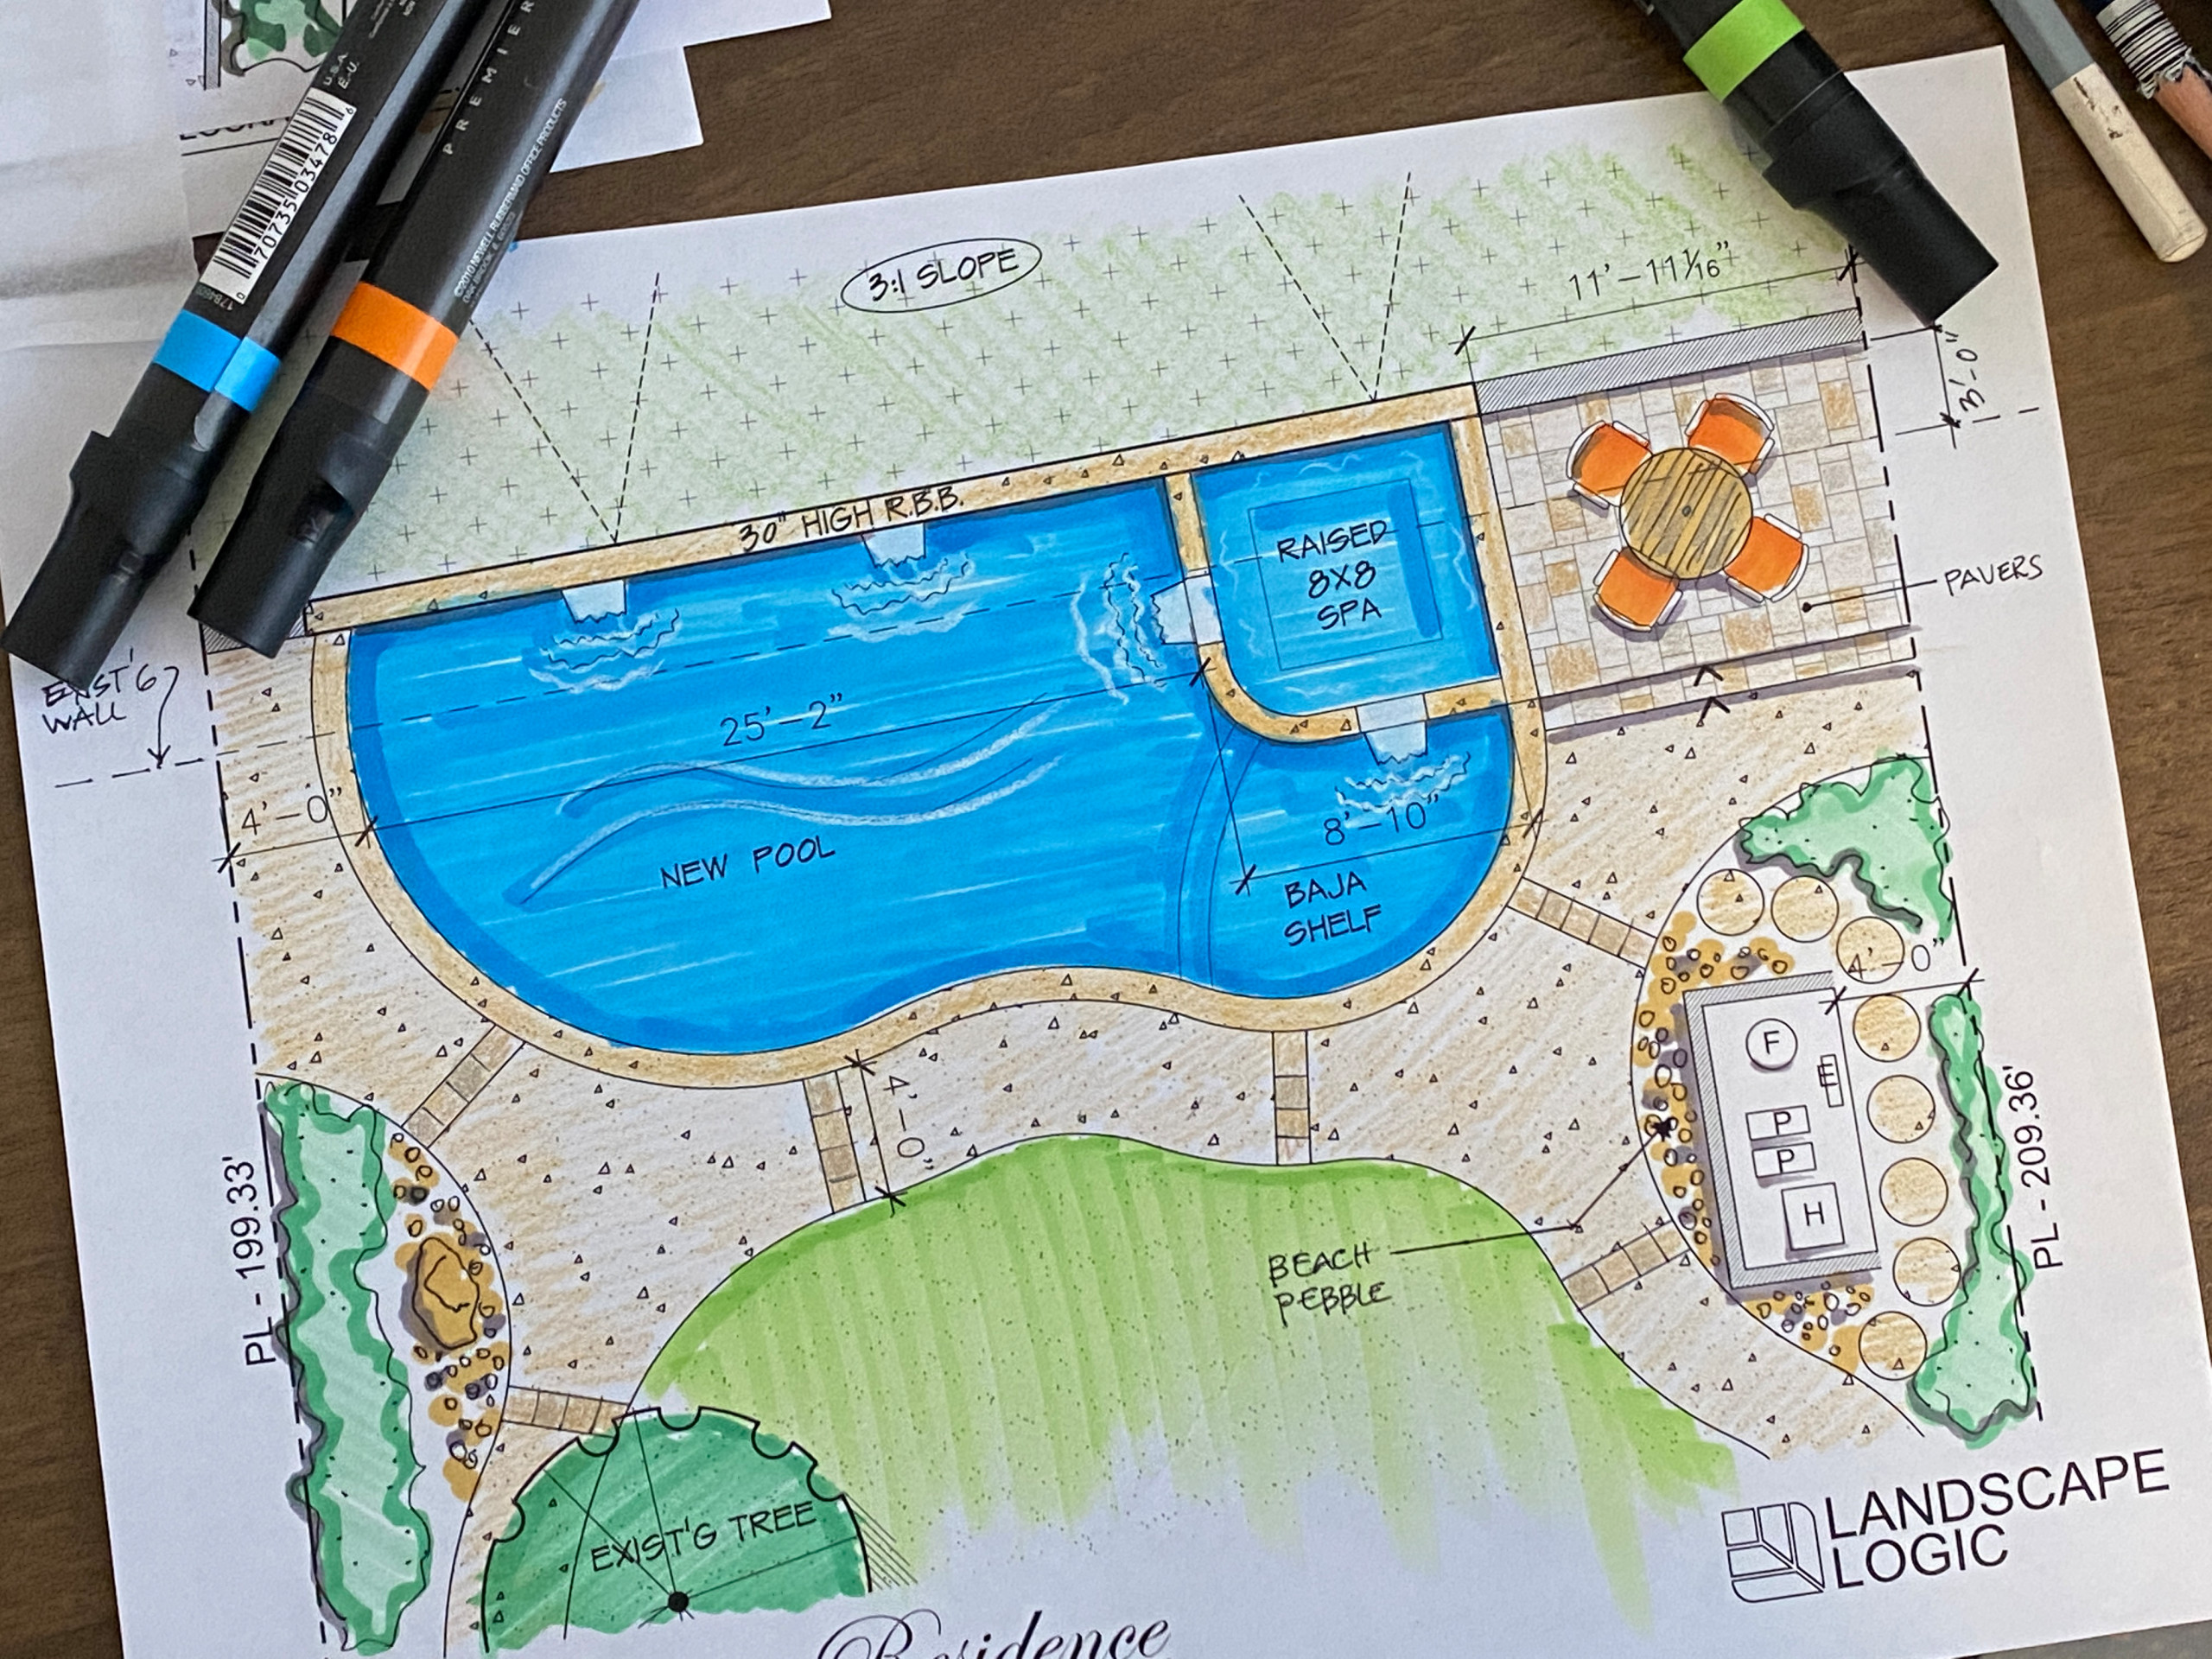 A New Pool Design with Seating